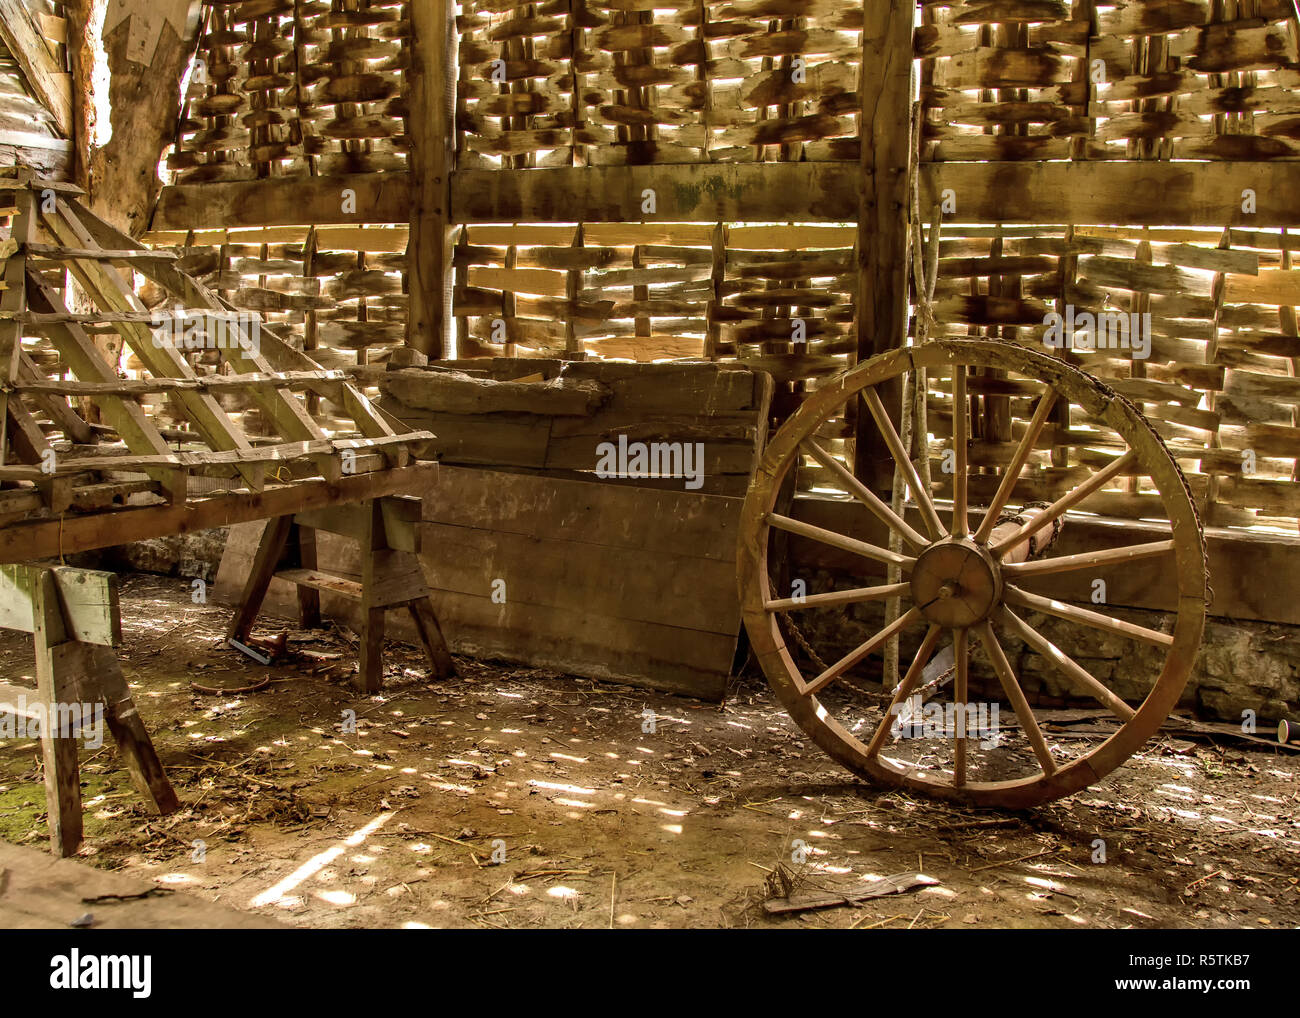 Wooden wagon wheel at Avoncroft Museum of historical buildings. - Stock Image